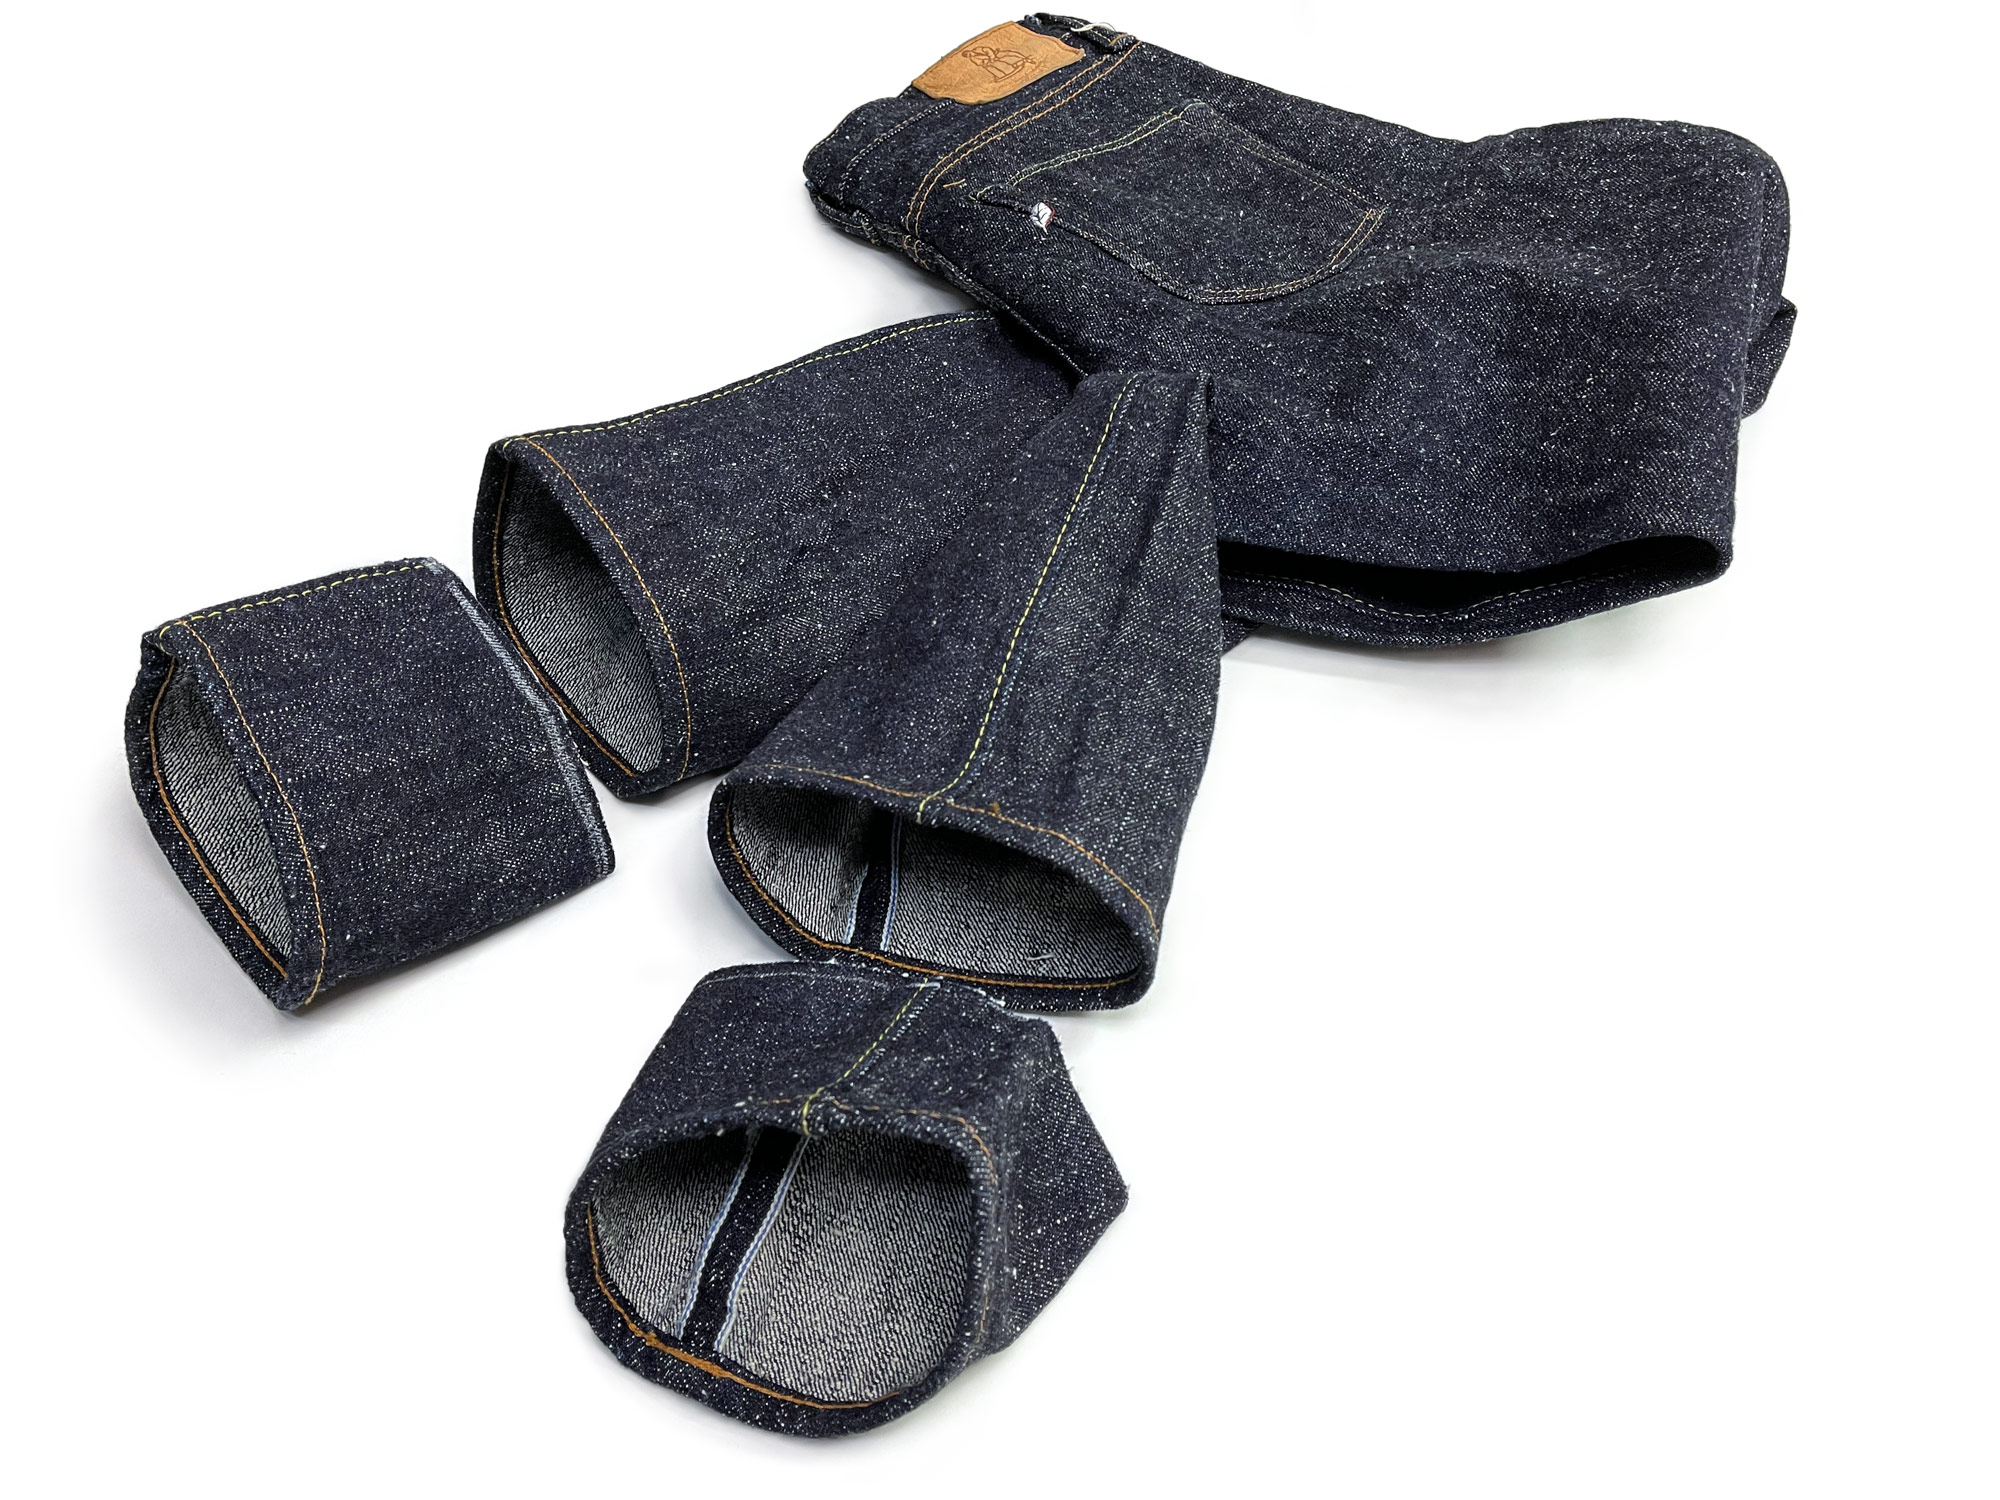 Syoaiya stubby raw selvedge Pure Blue Japan jeans with denim alterations by Williamsburg Garment Co.